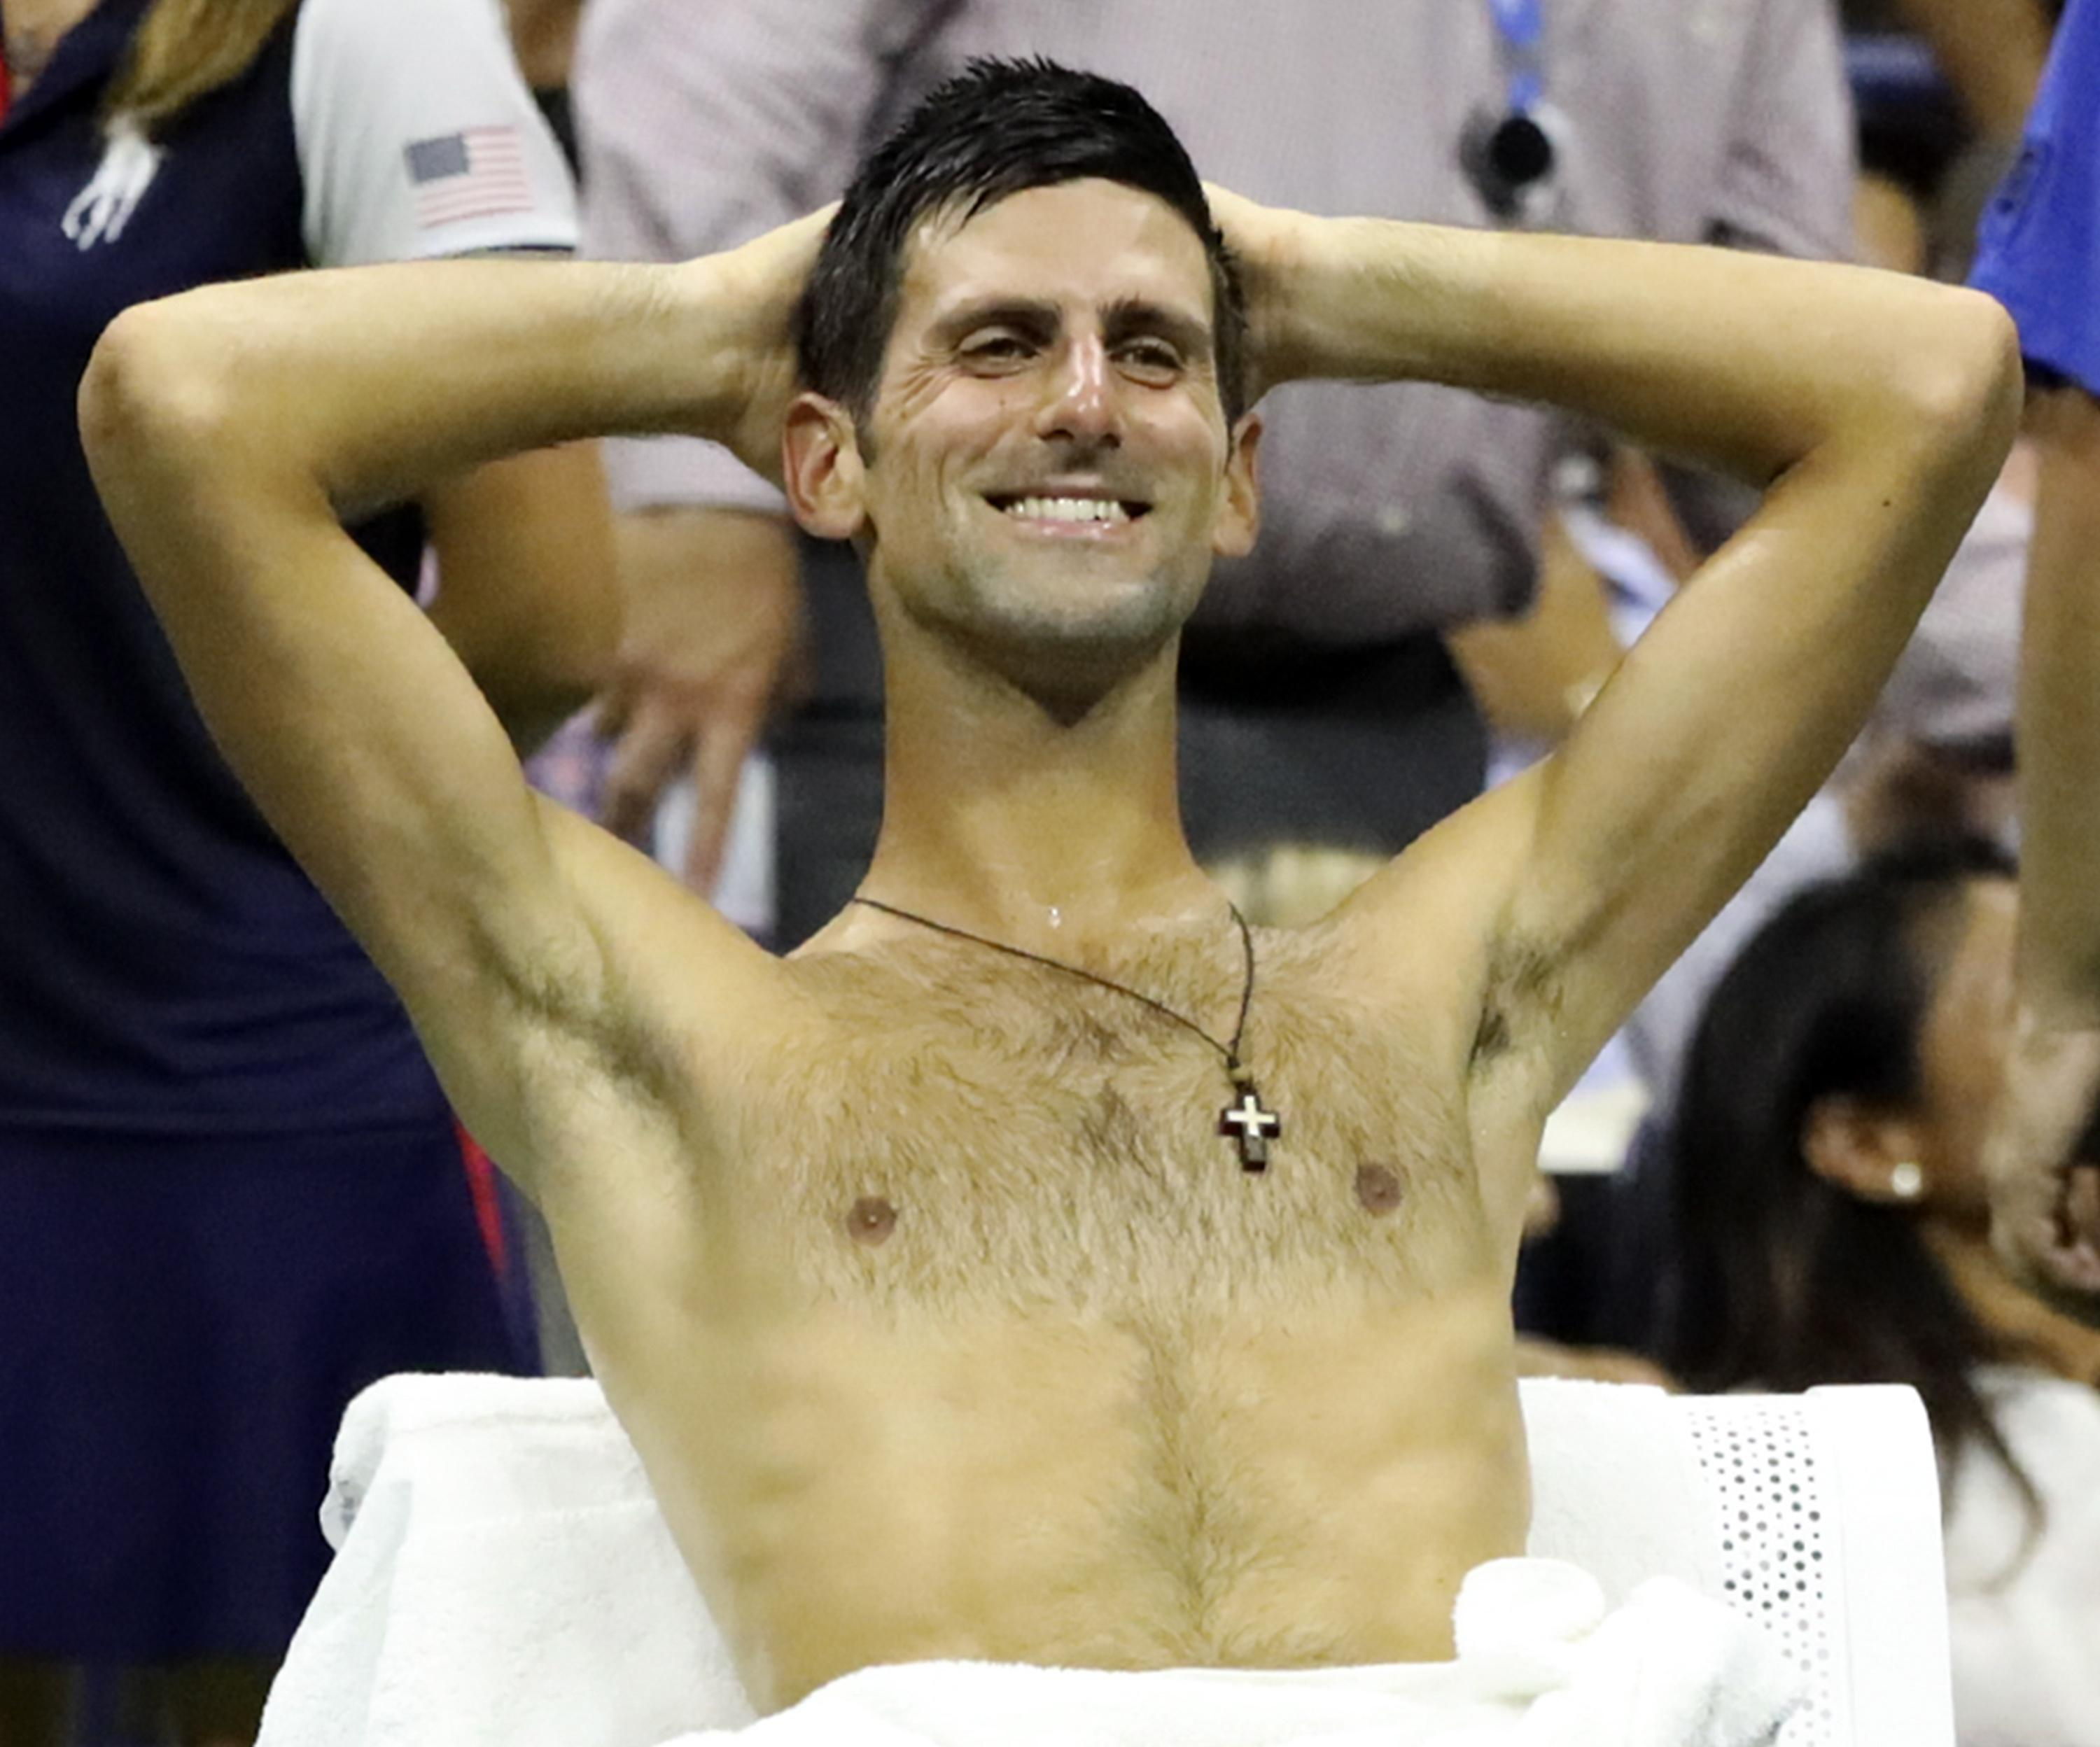 Novak Djokovic cools down with his shirt off at the US Open